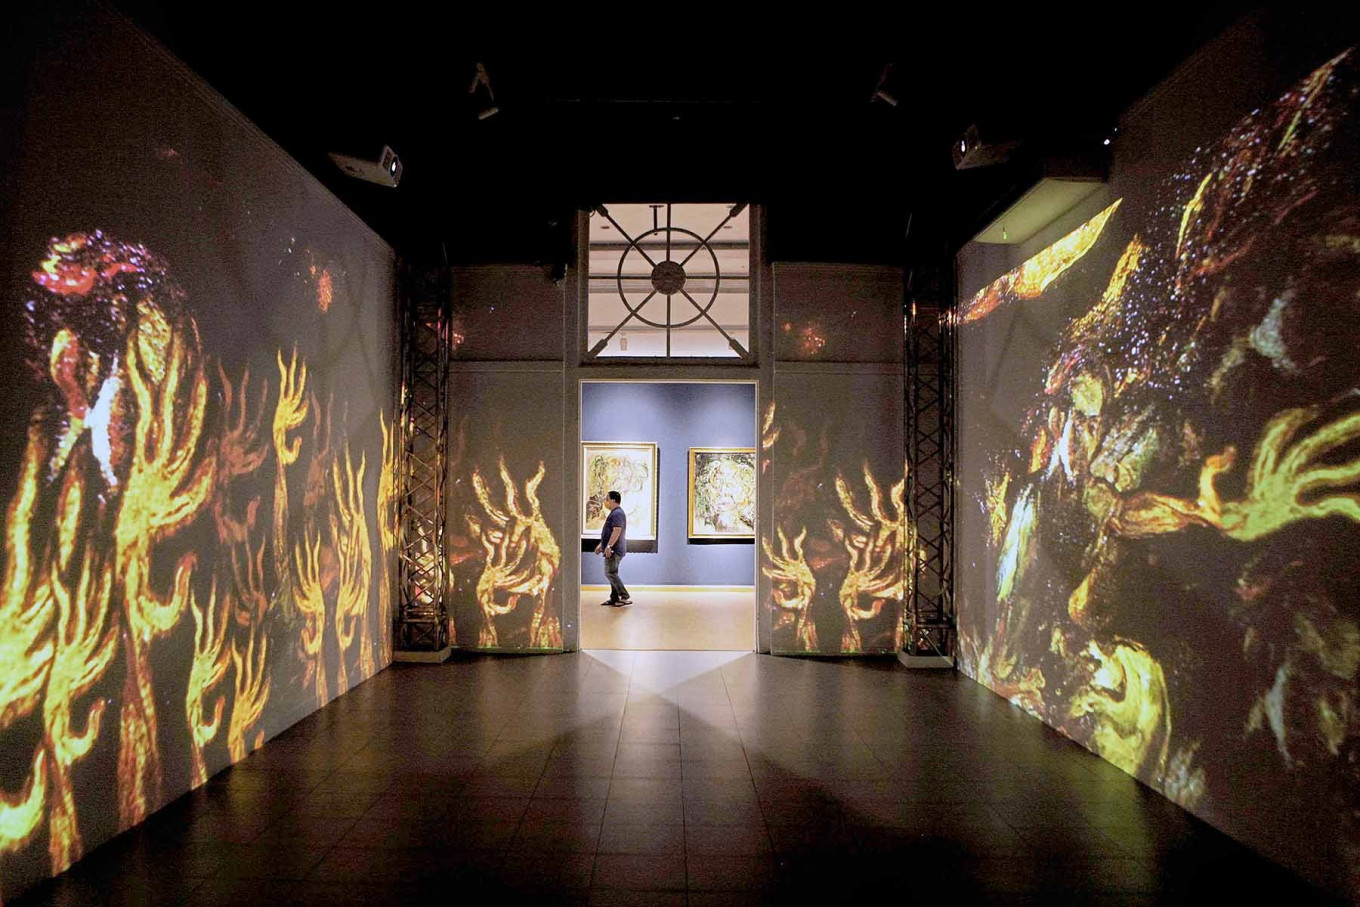 """Visitors look at a video display on Nov. 1, 2020 during the """"Immersive Affandi: Human, Space, Nature"""" exhibition, which runs from Oct. 26 to Nov. 25 at the National Gallery of Indonesia in Jakarta. JP/Seto Wardhana"""